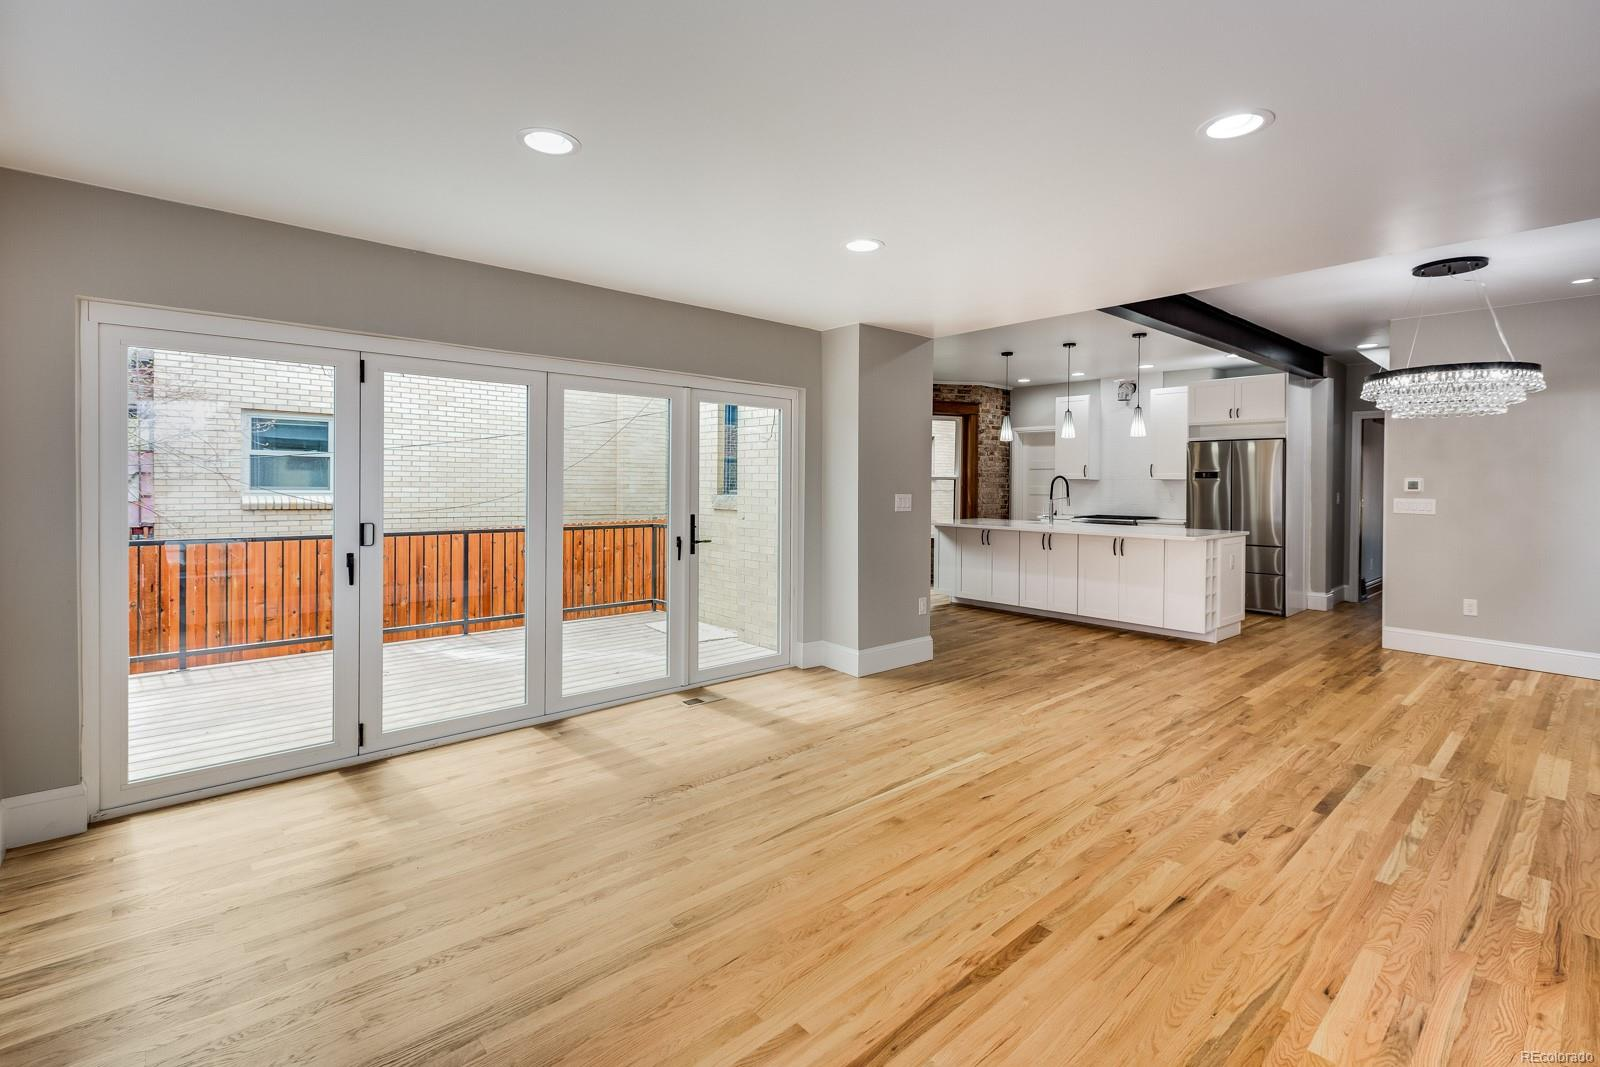 Accordion door creates a 12-foot wide opening to the deck.